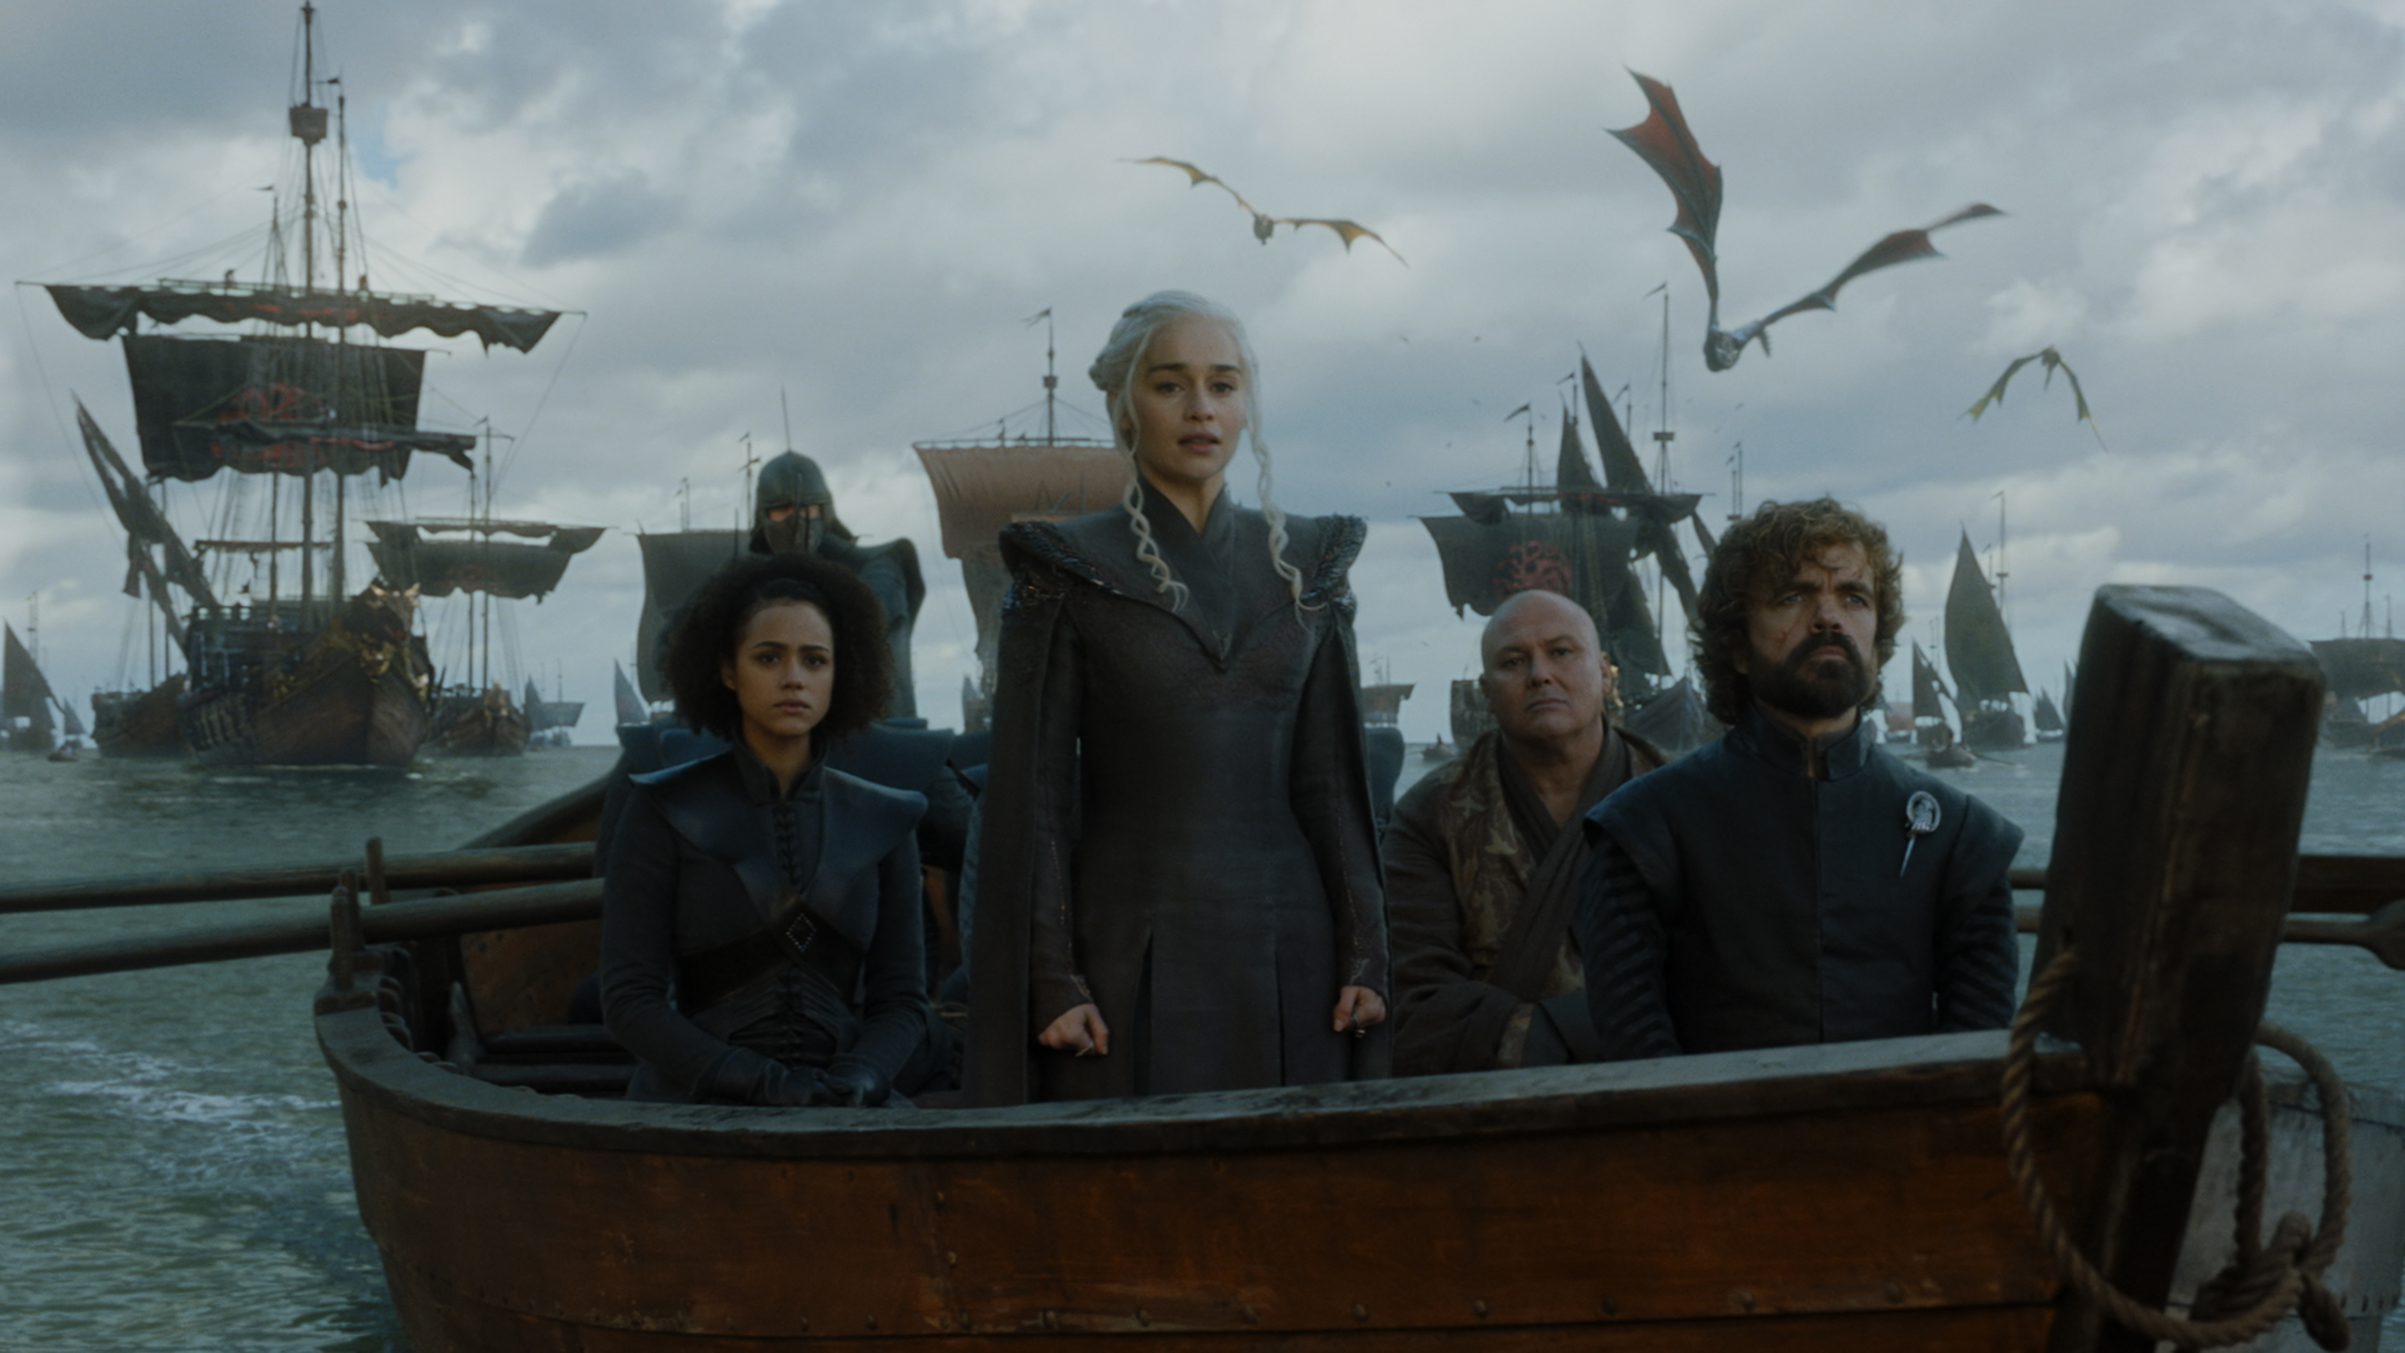 Daenerys and co